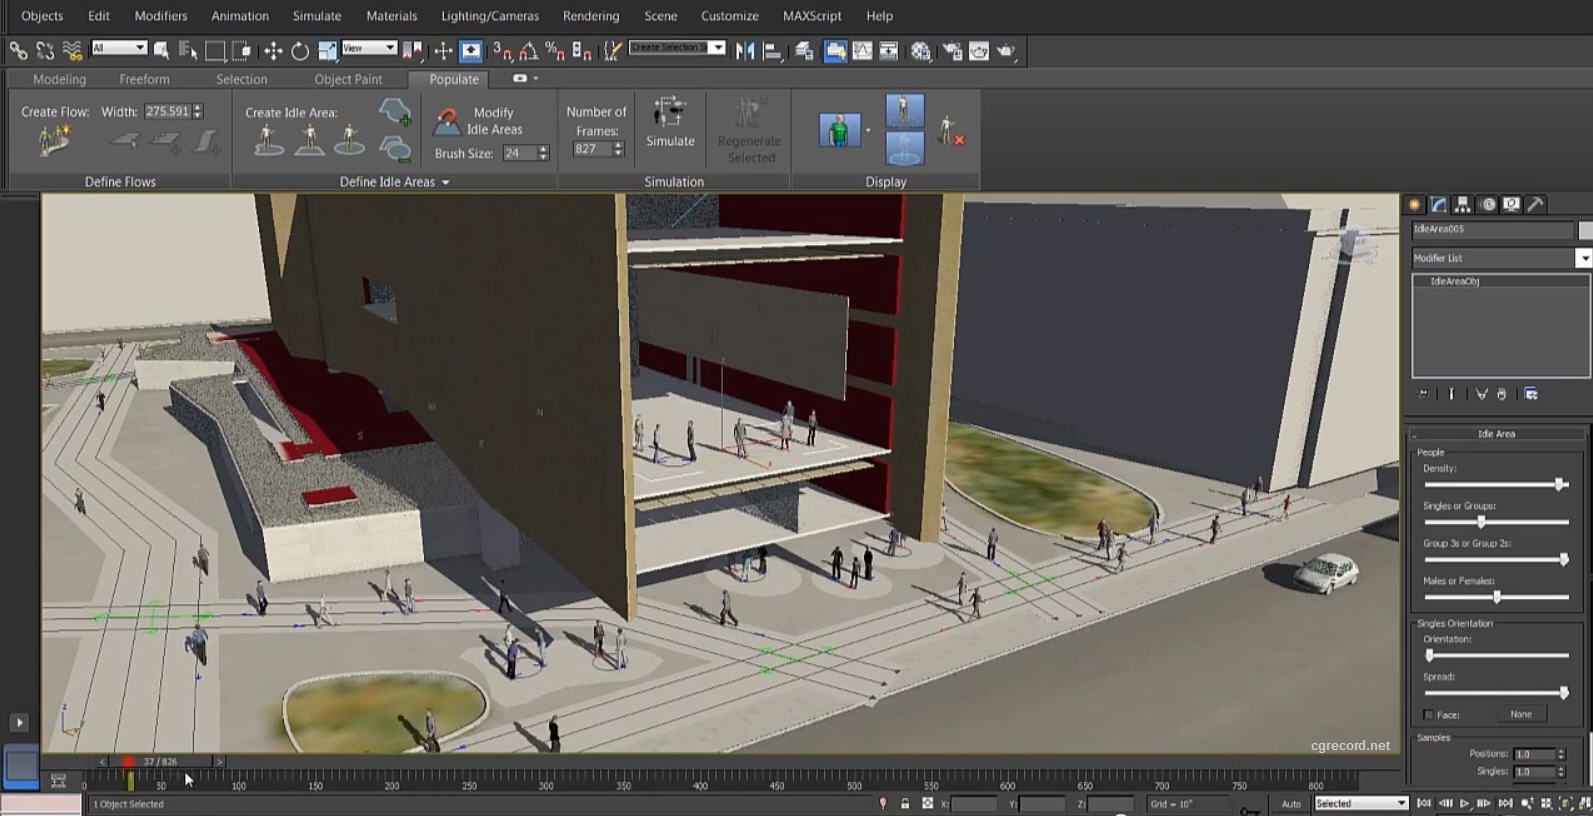 Autodesk 3ds Max 2014 Extension